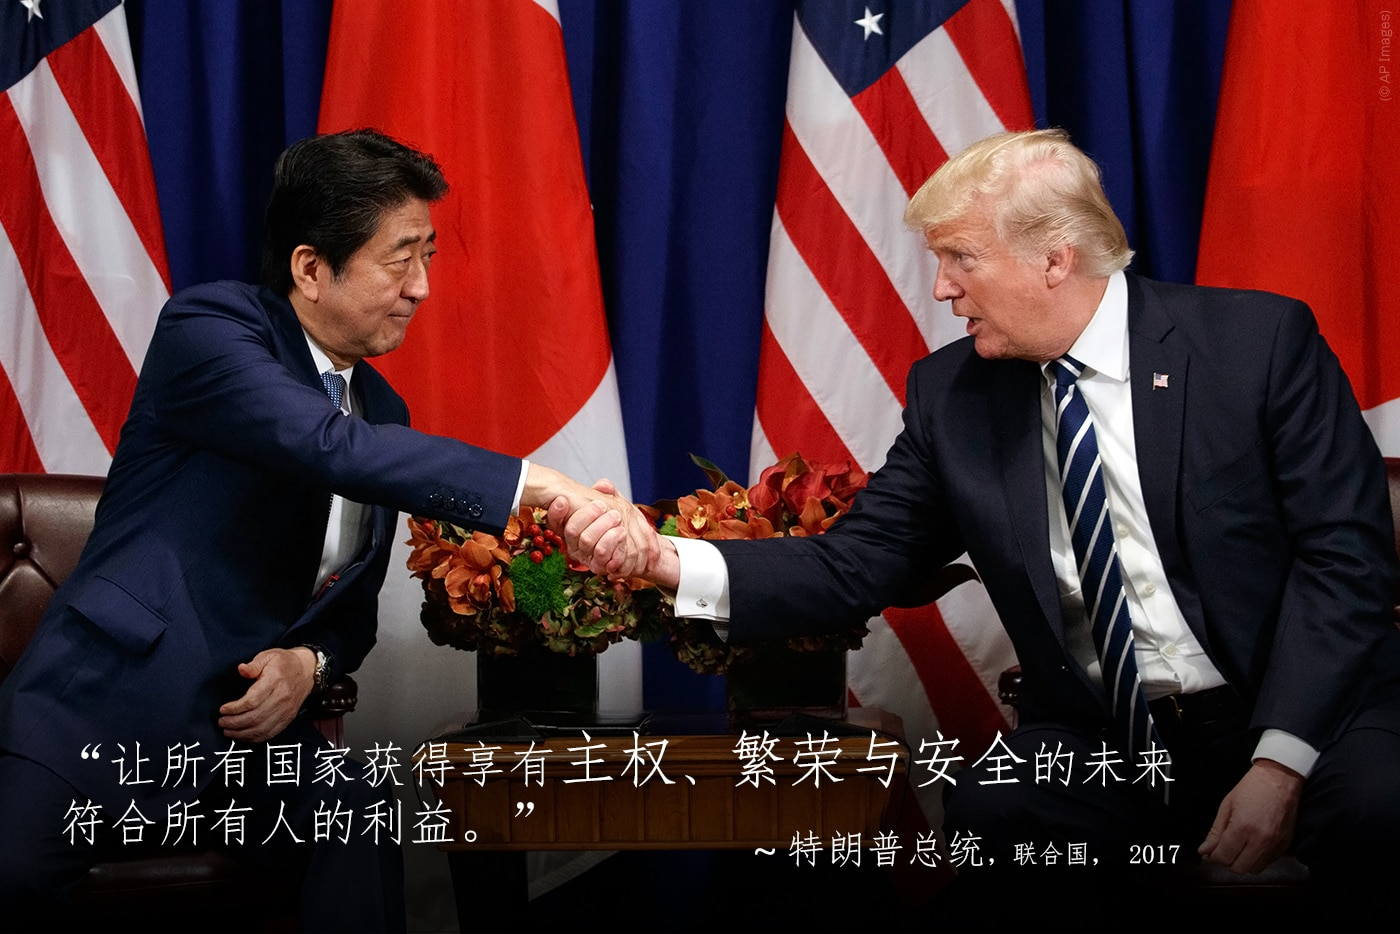 Shinzō Abe and Donald Trump shaking hands, with quote overlaid (© AP Images)